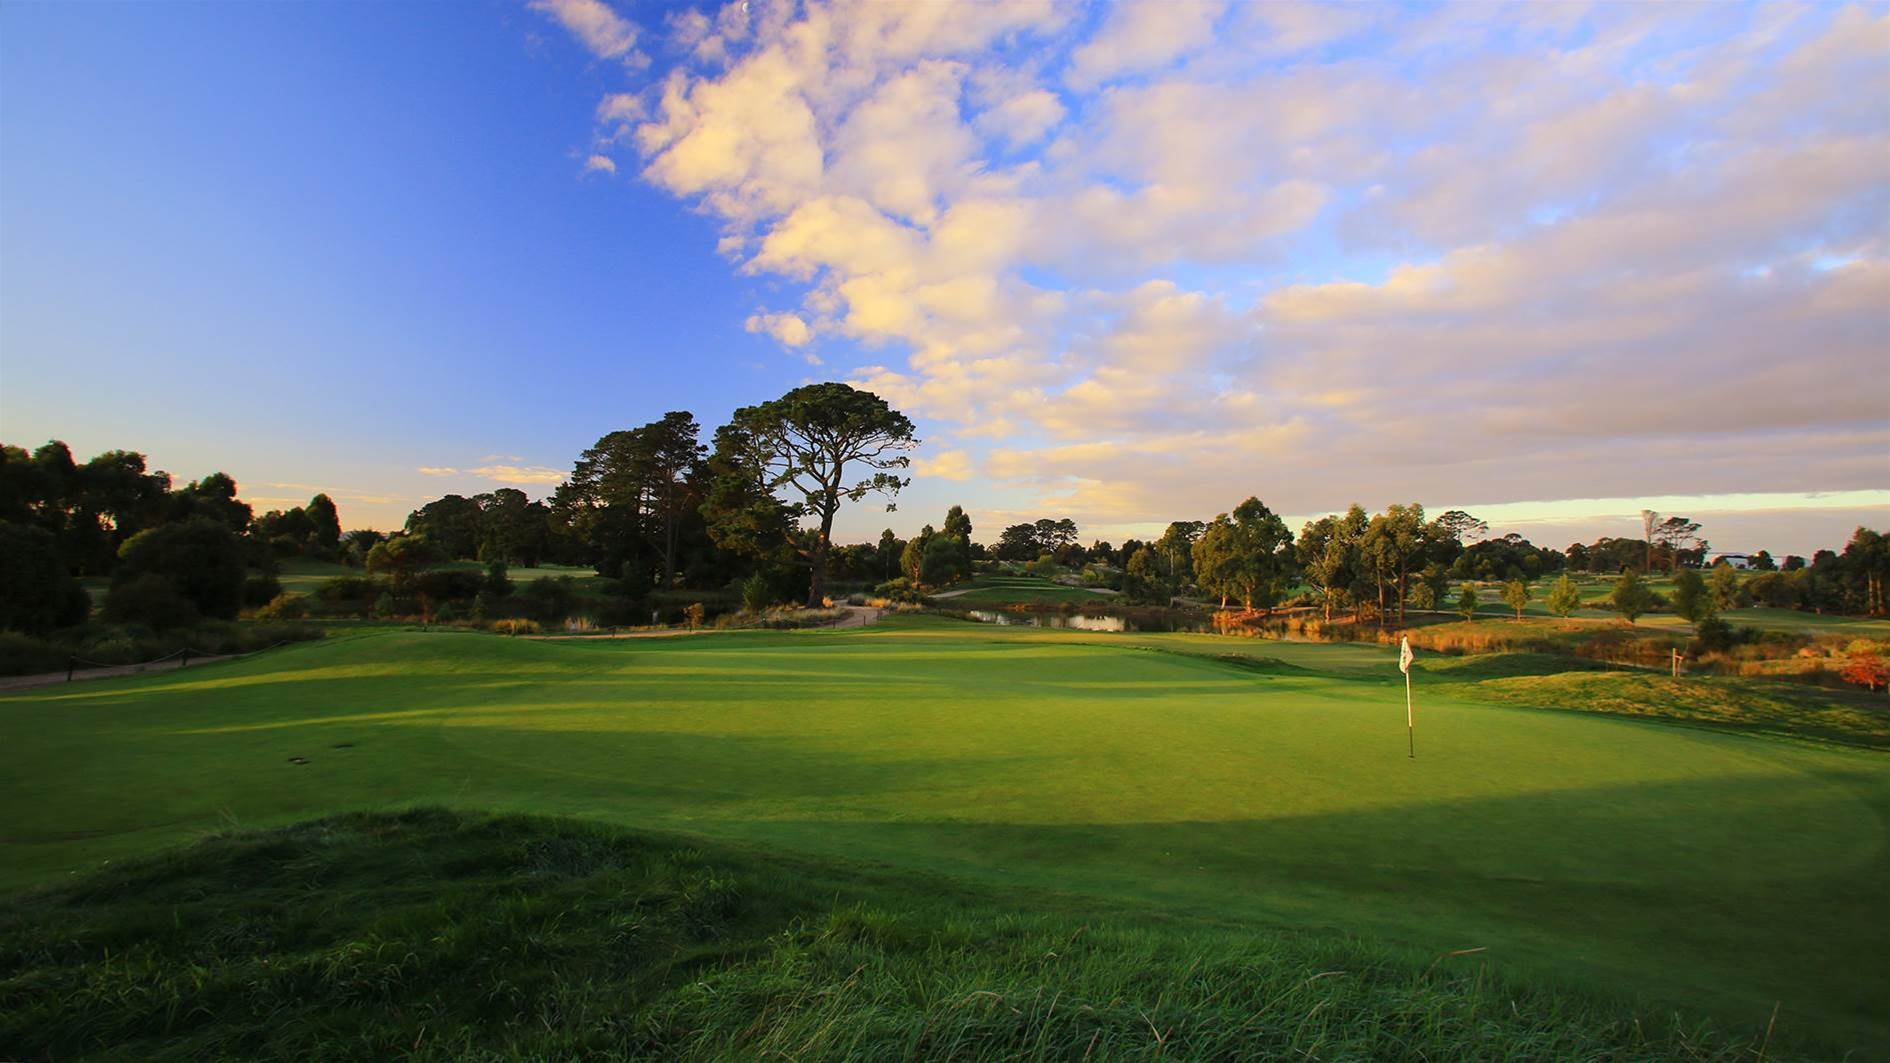 REVIEW: Ballarat Golf Club